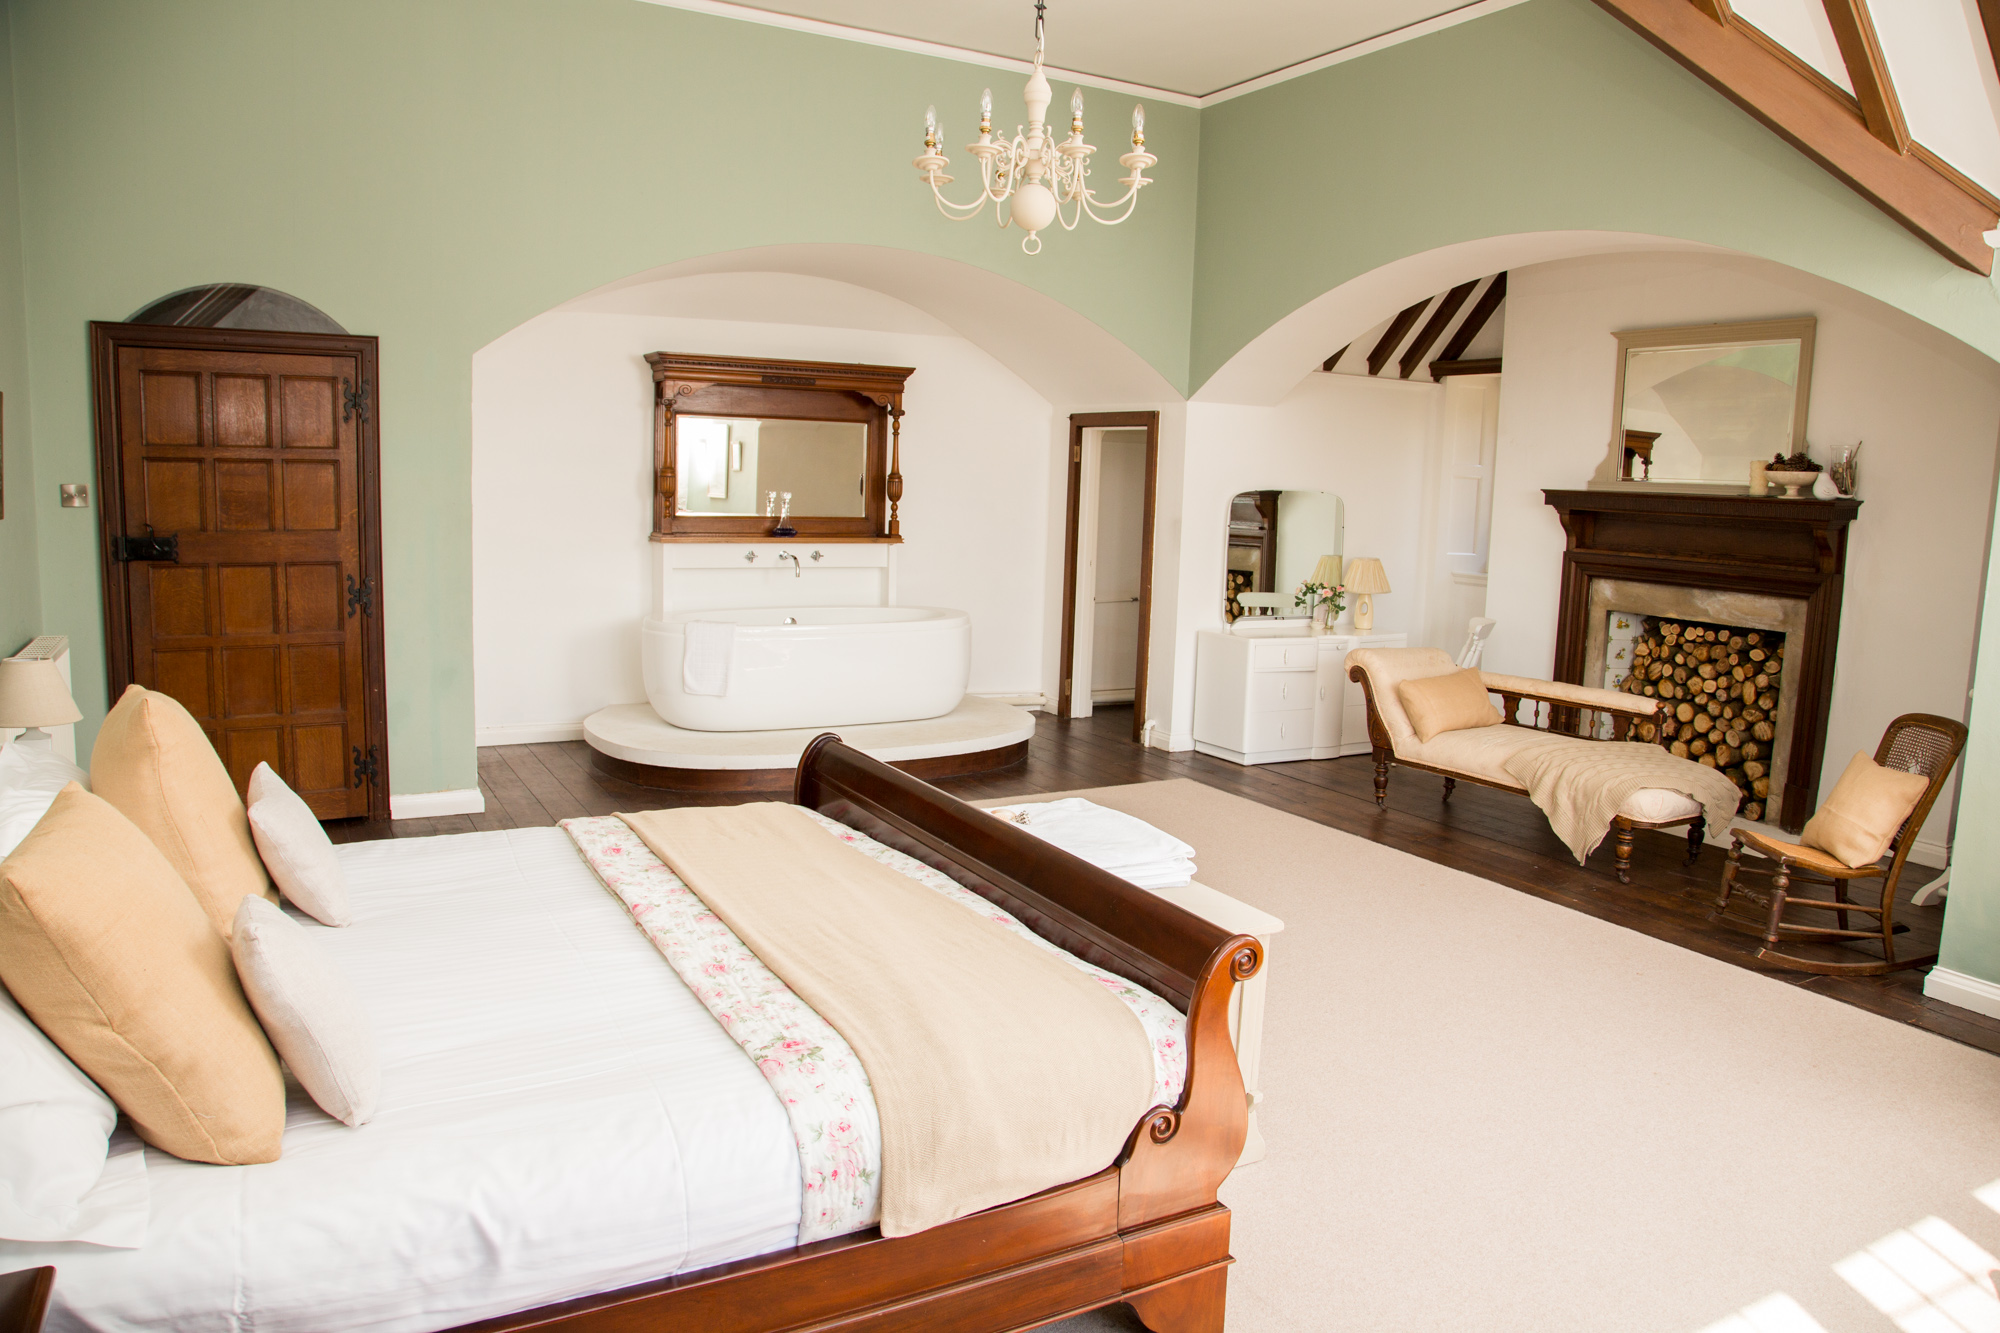 8 bed self-catered coastal accommodation